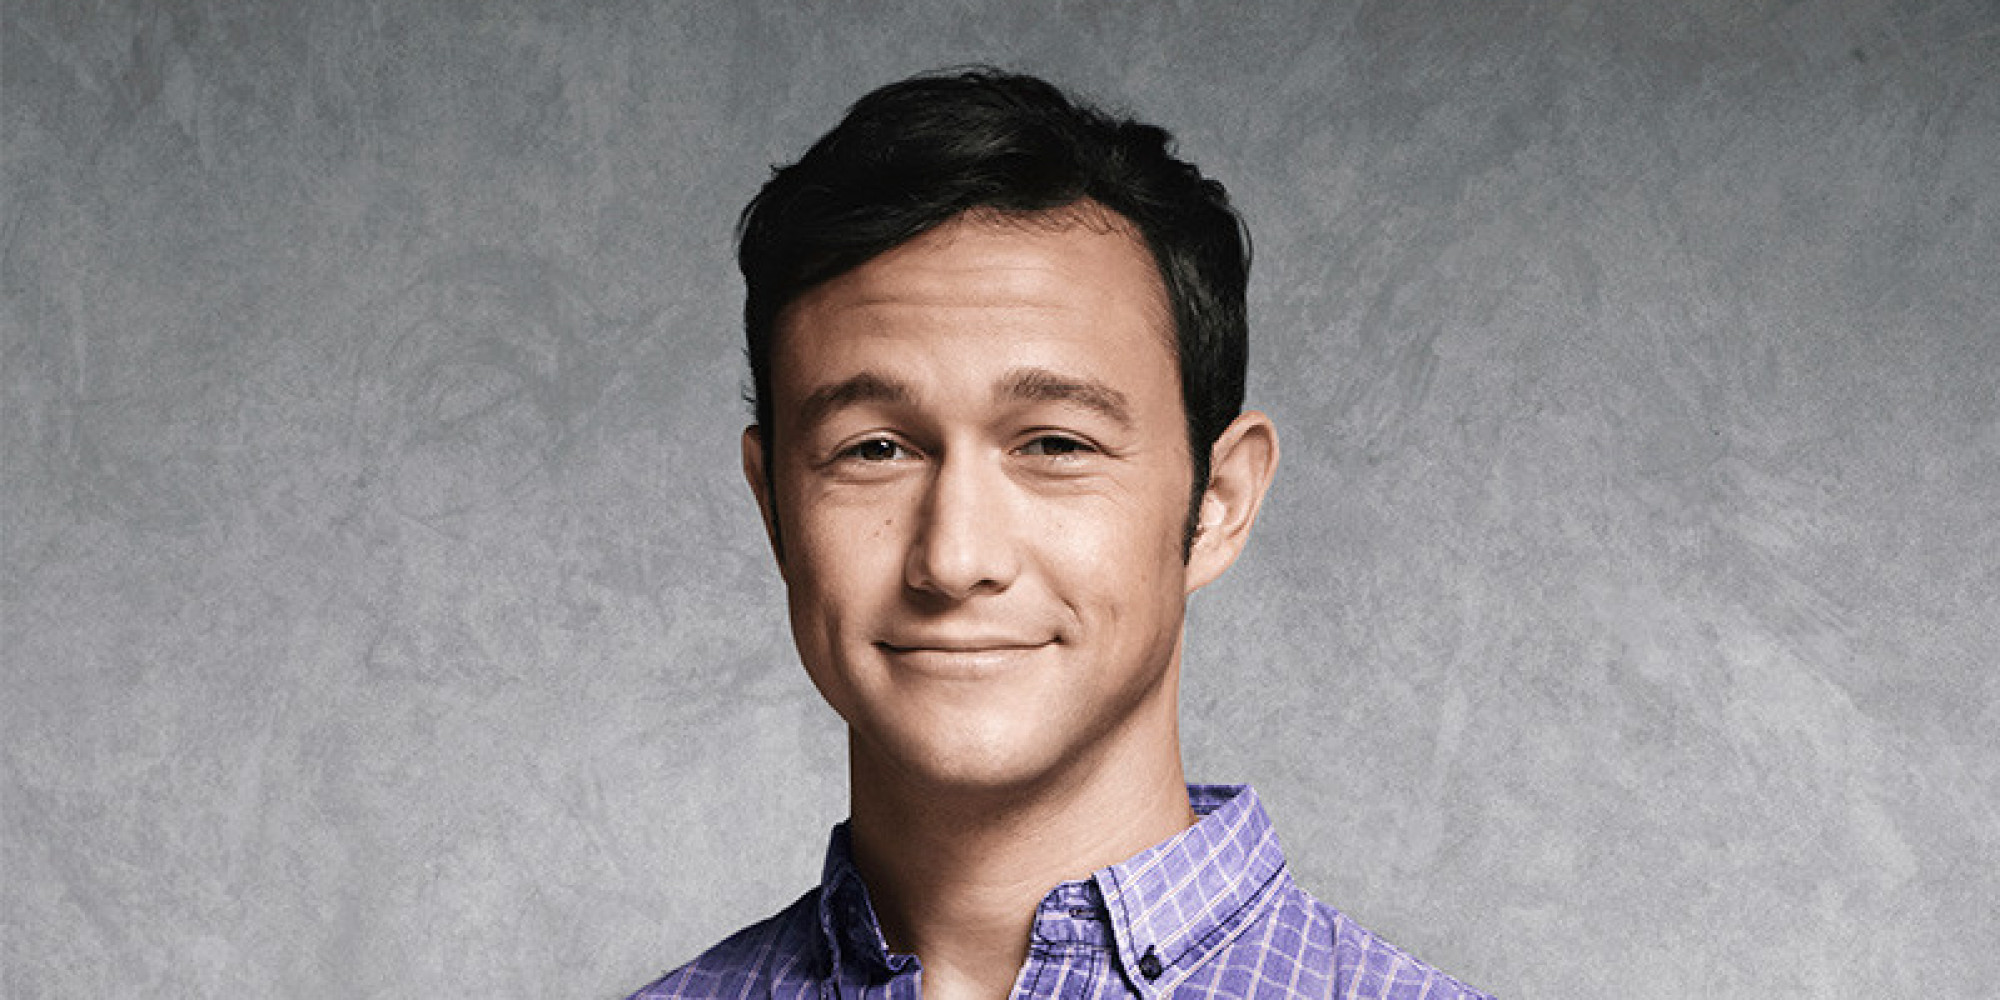 Joseph Gordon-Levitt Wallpapers High Resolution and Quality ...